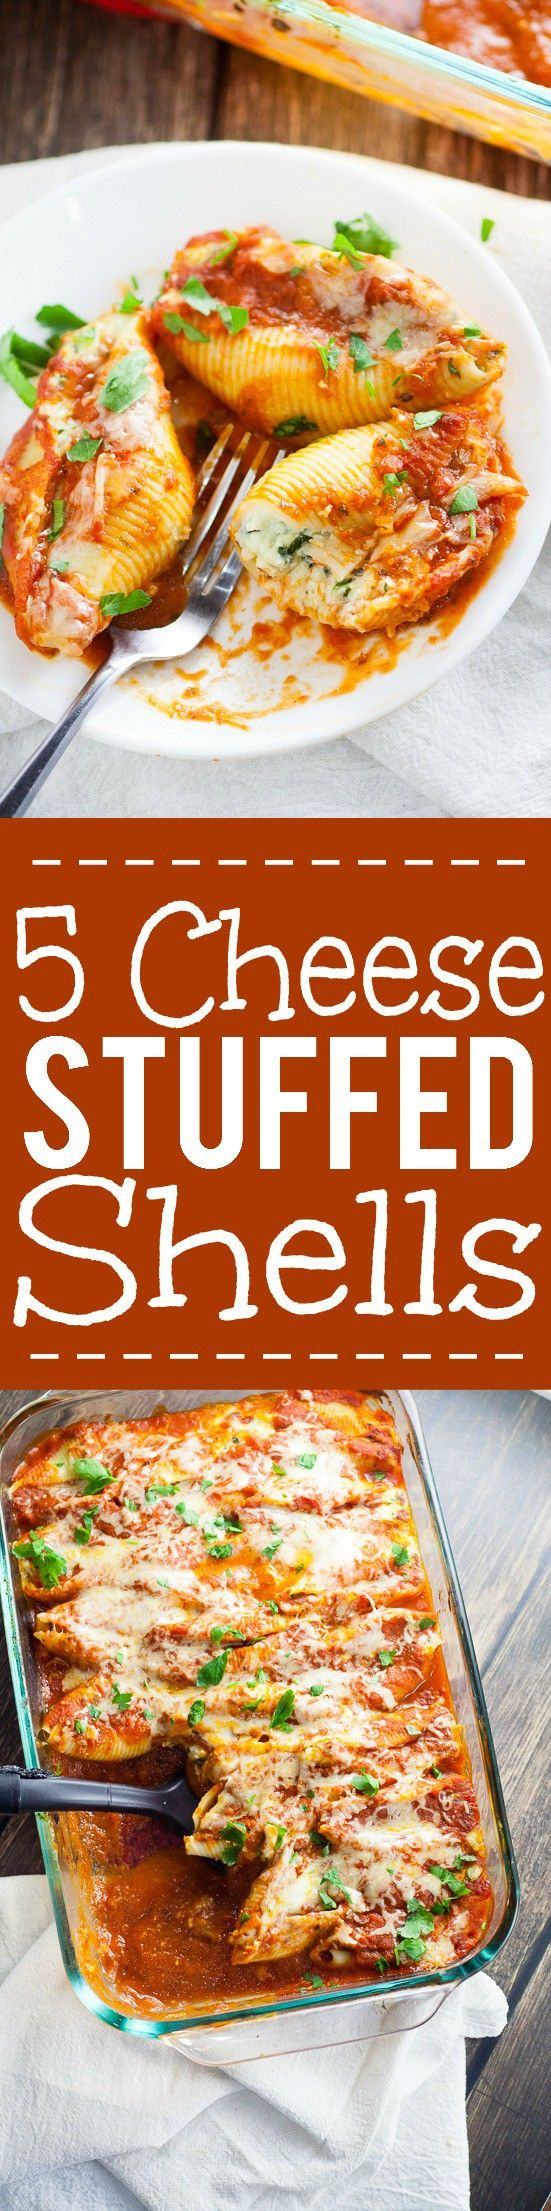 5 Cheese Stuffed Shells Recipe is an easy pasta recipe perfect for family dinner. Classic Italian flavors featuring five different cheeses, garlic, spinach, and red sauce this 5 Cheese Stuffed Shell R (Chicken Breastrecipes)